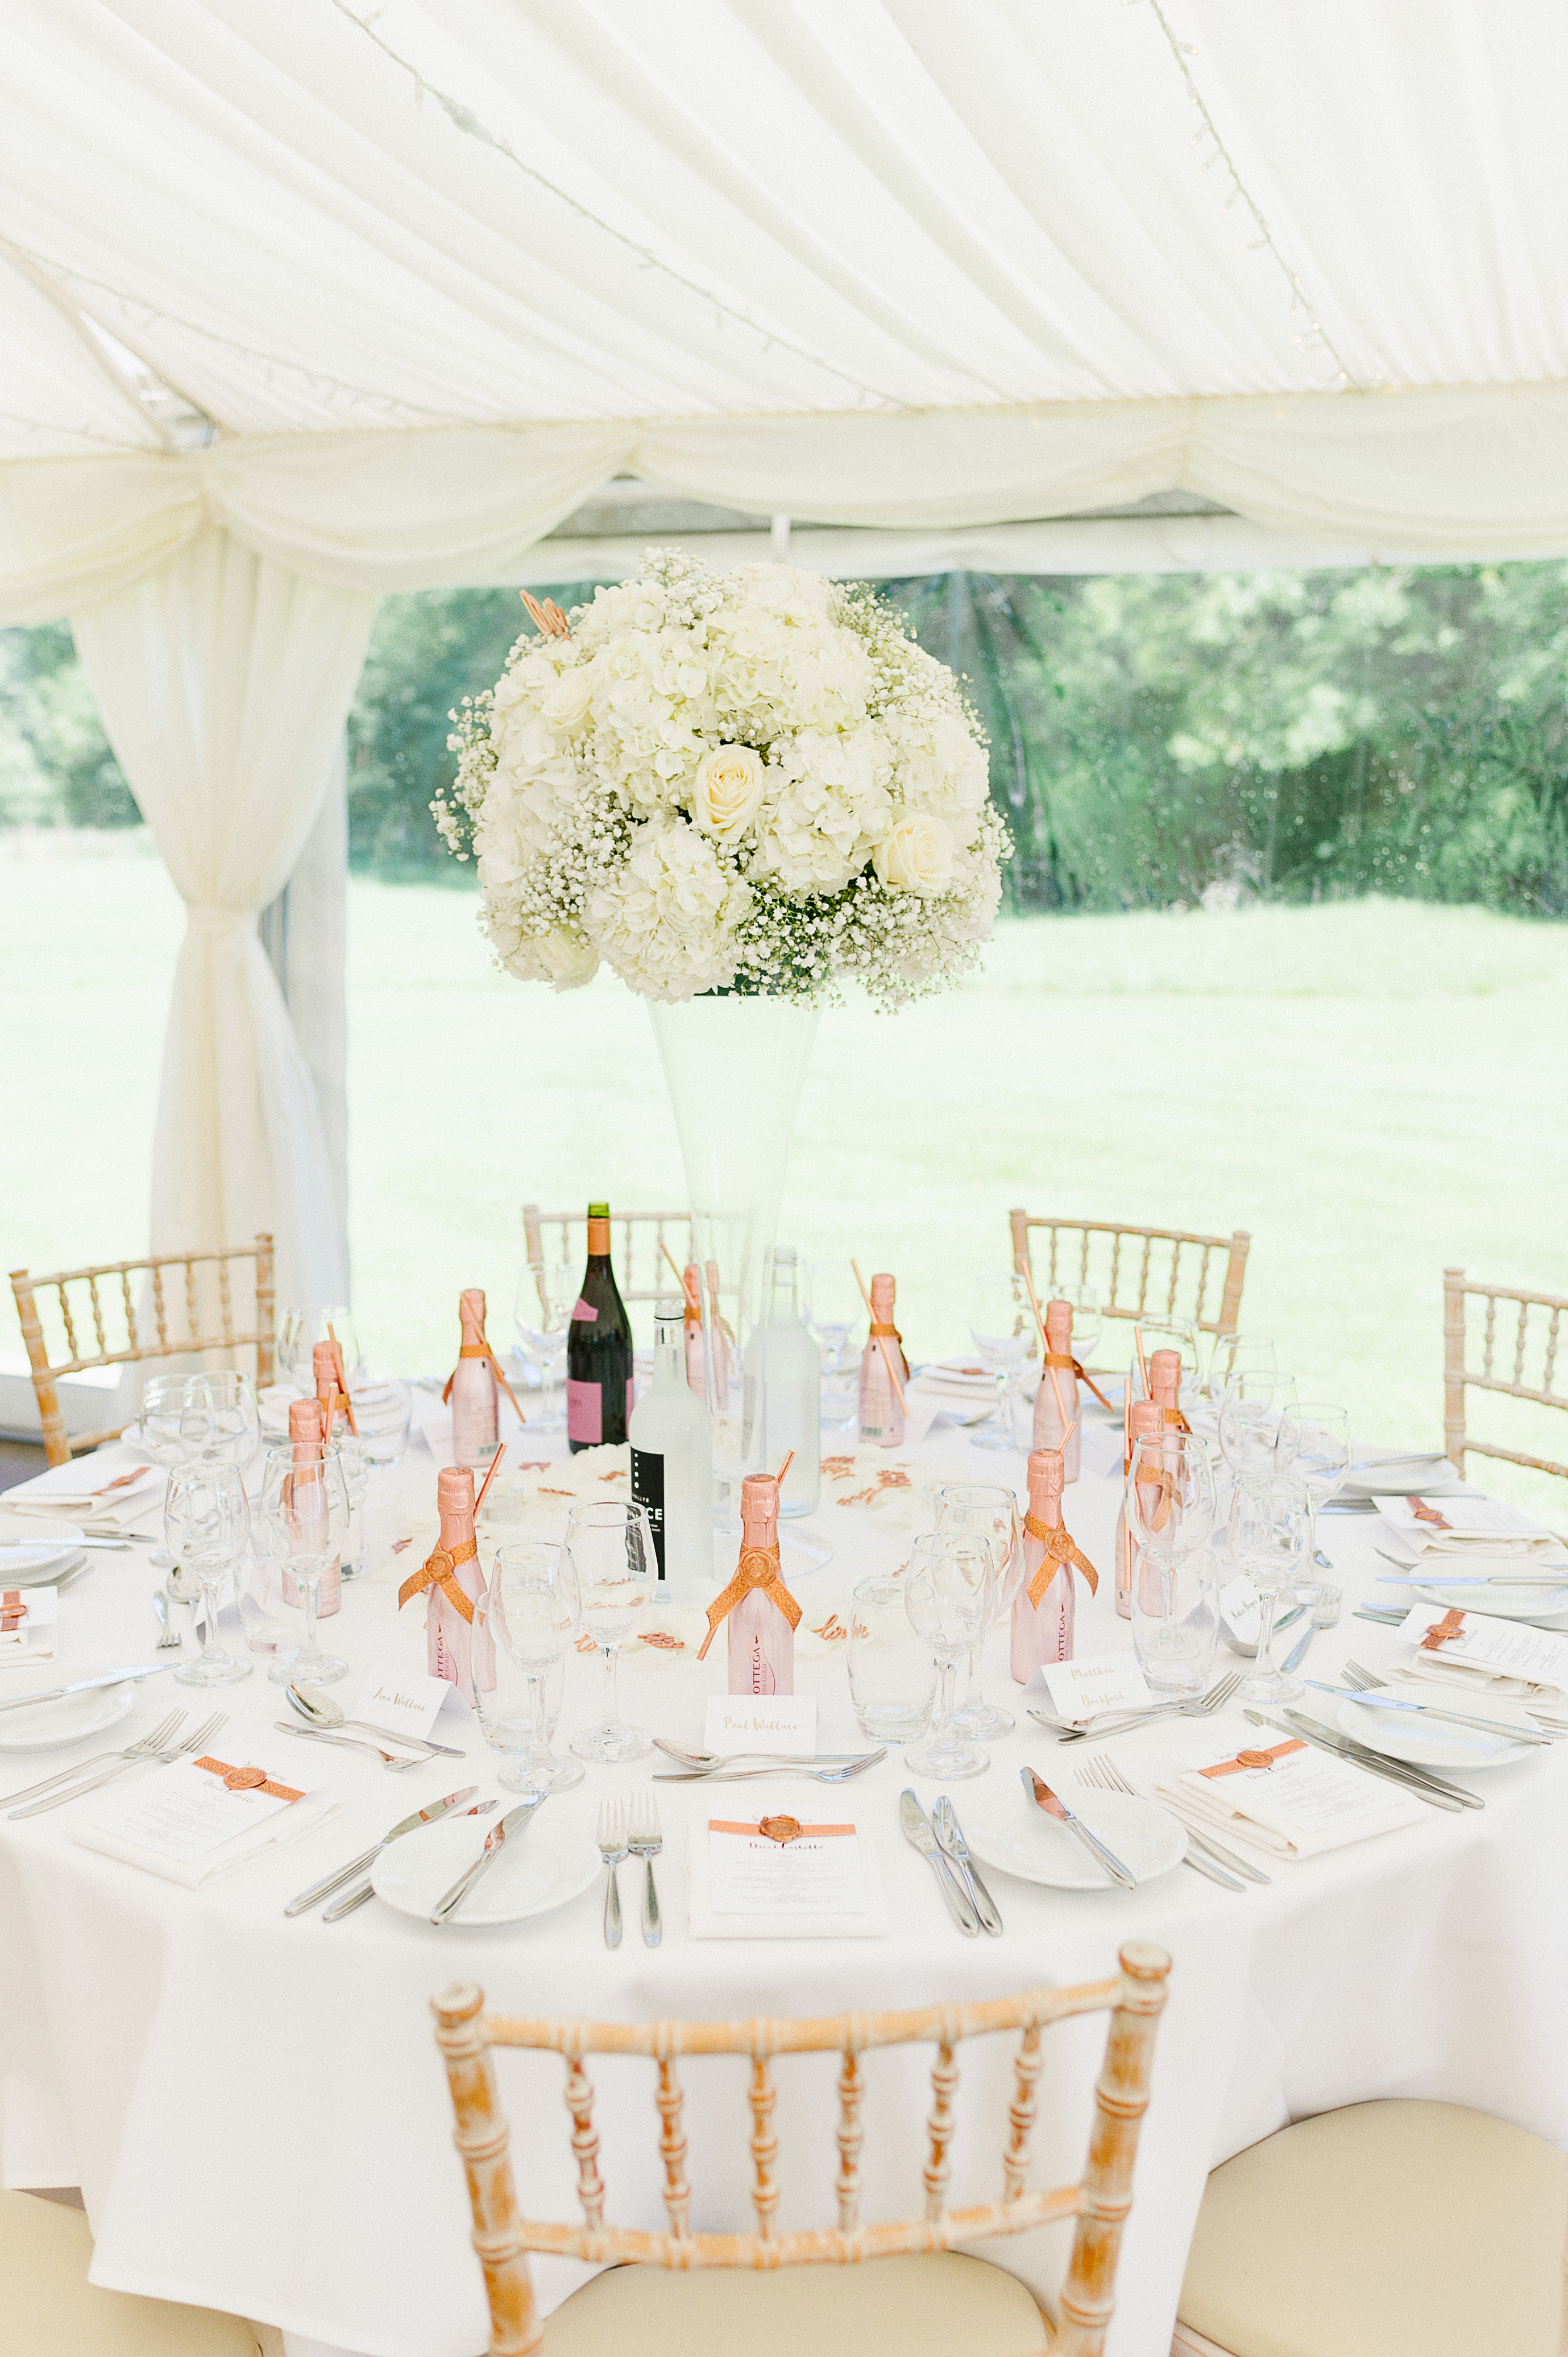 Ardington-house-wedding-ilaria-petrucci-photography-sophie-and-david-650